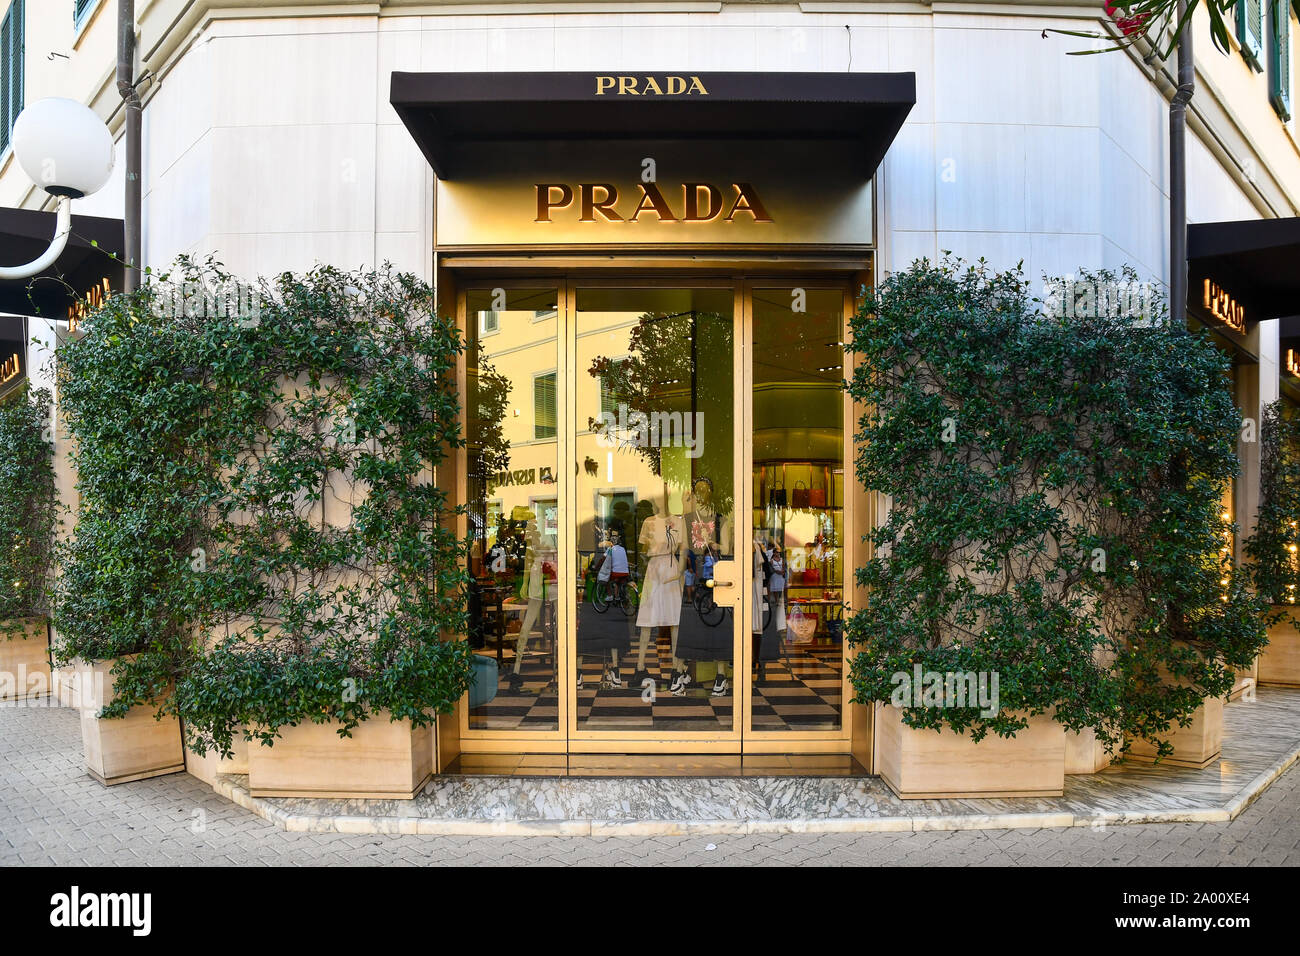 Italian Case Forte Dei Marmi facade of the prada luxury fashion shop in the centre of